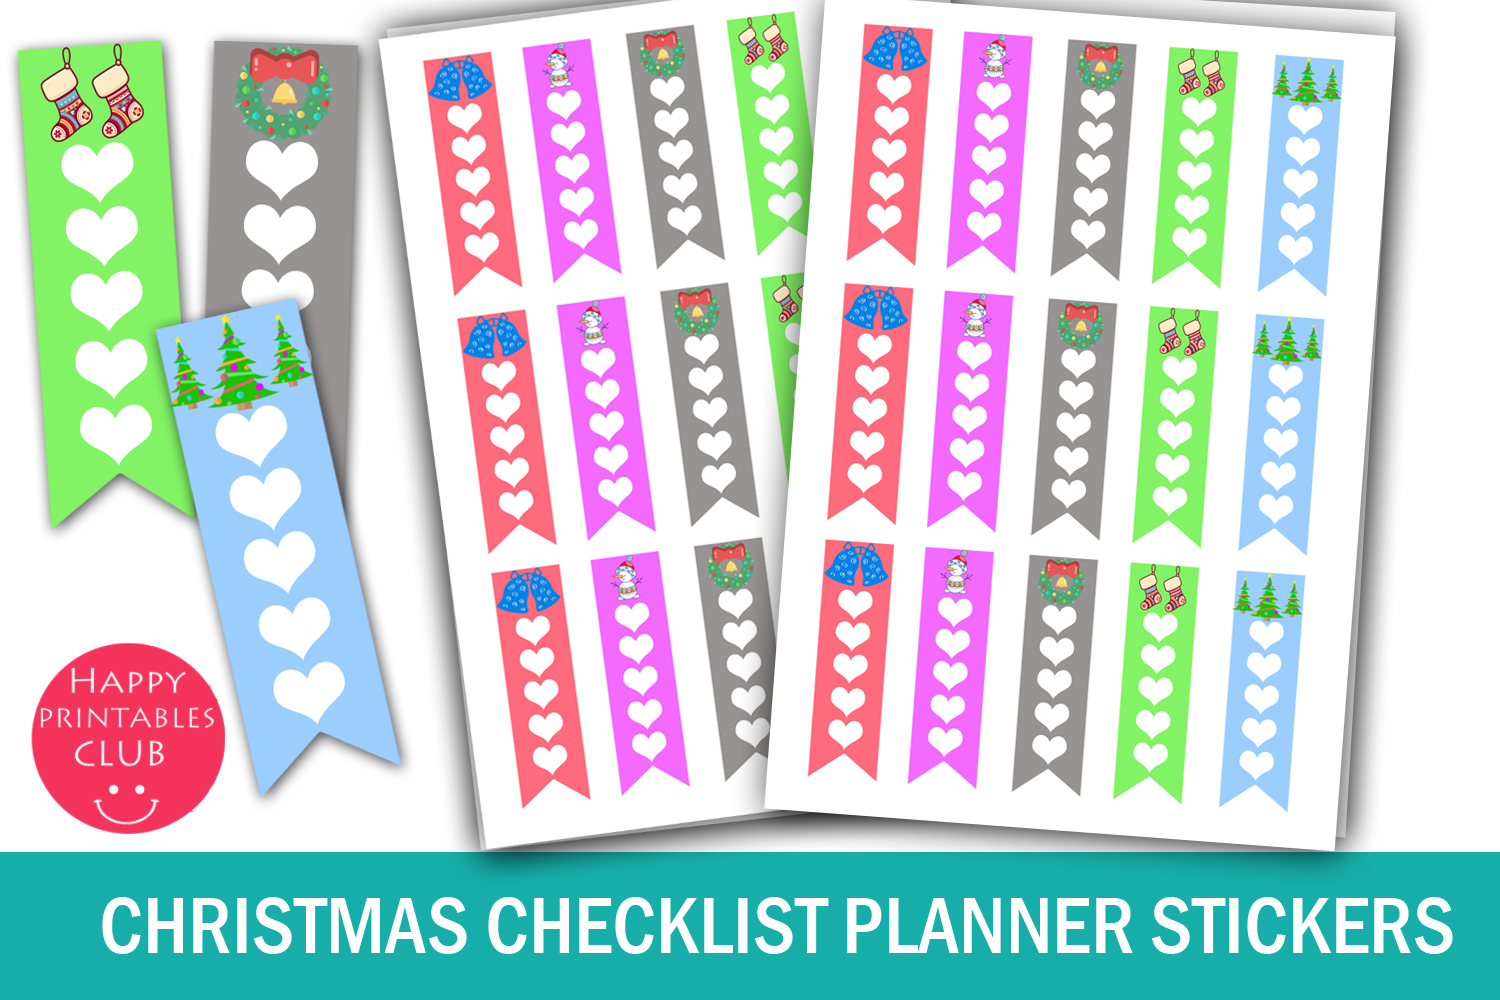 Download Free Christmas Checklist Planner Stickers Graphic By Happy Printables SVG Cut Files